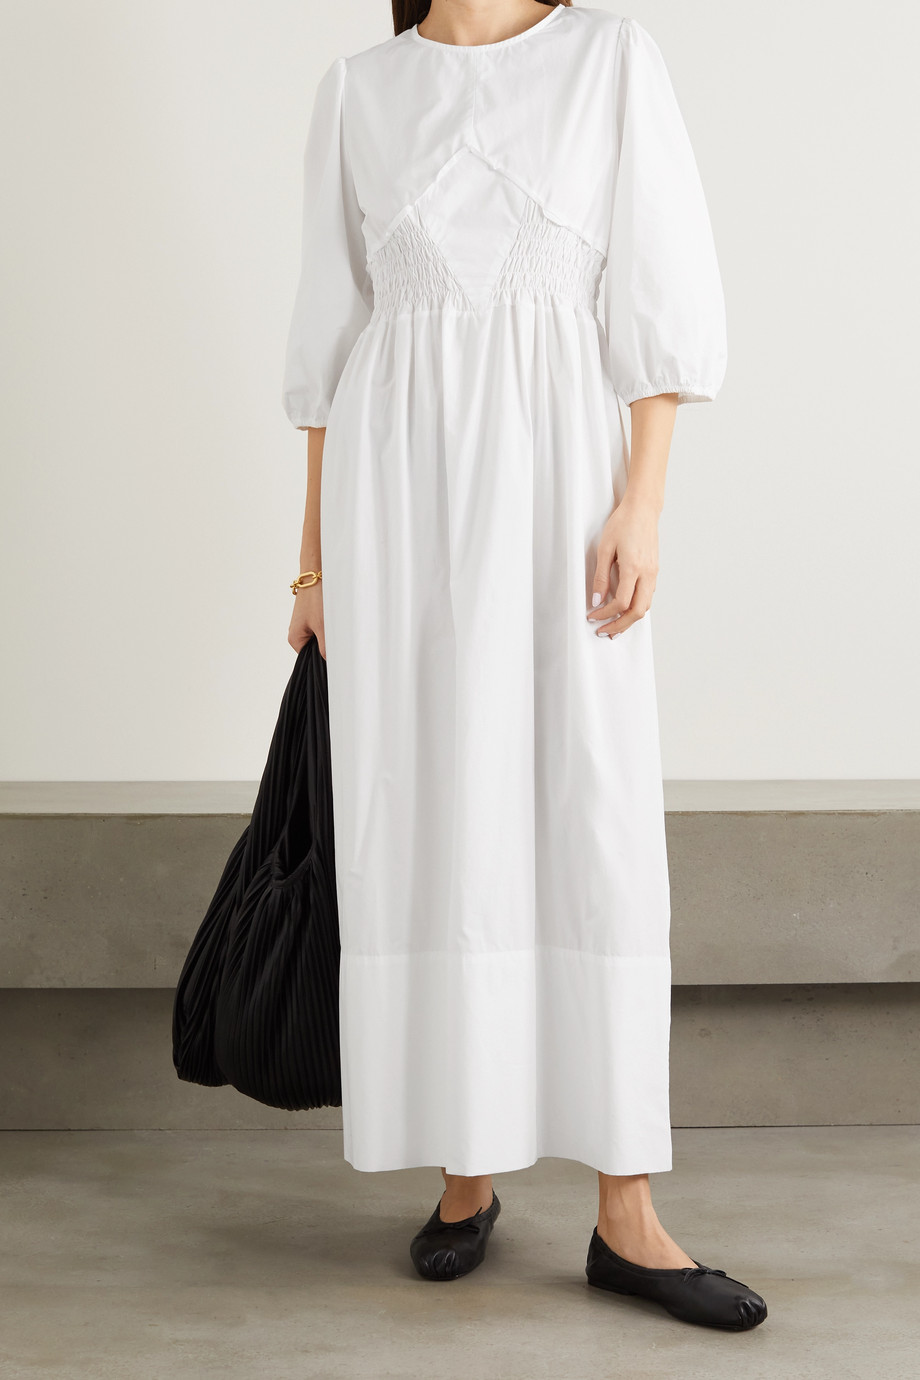 CAES + NET SUSTAIN shirred Lyocell and cotton-blend poplin maxi dress